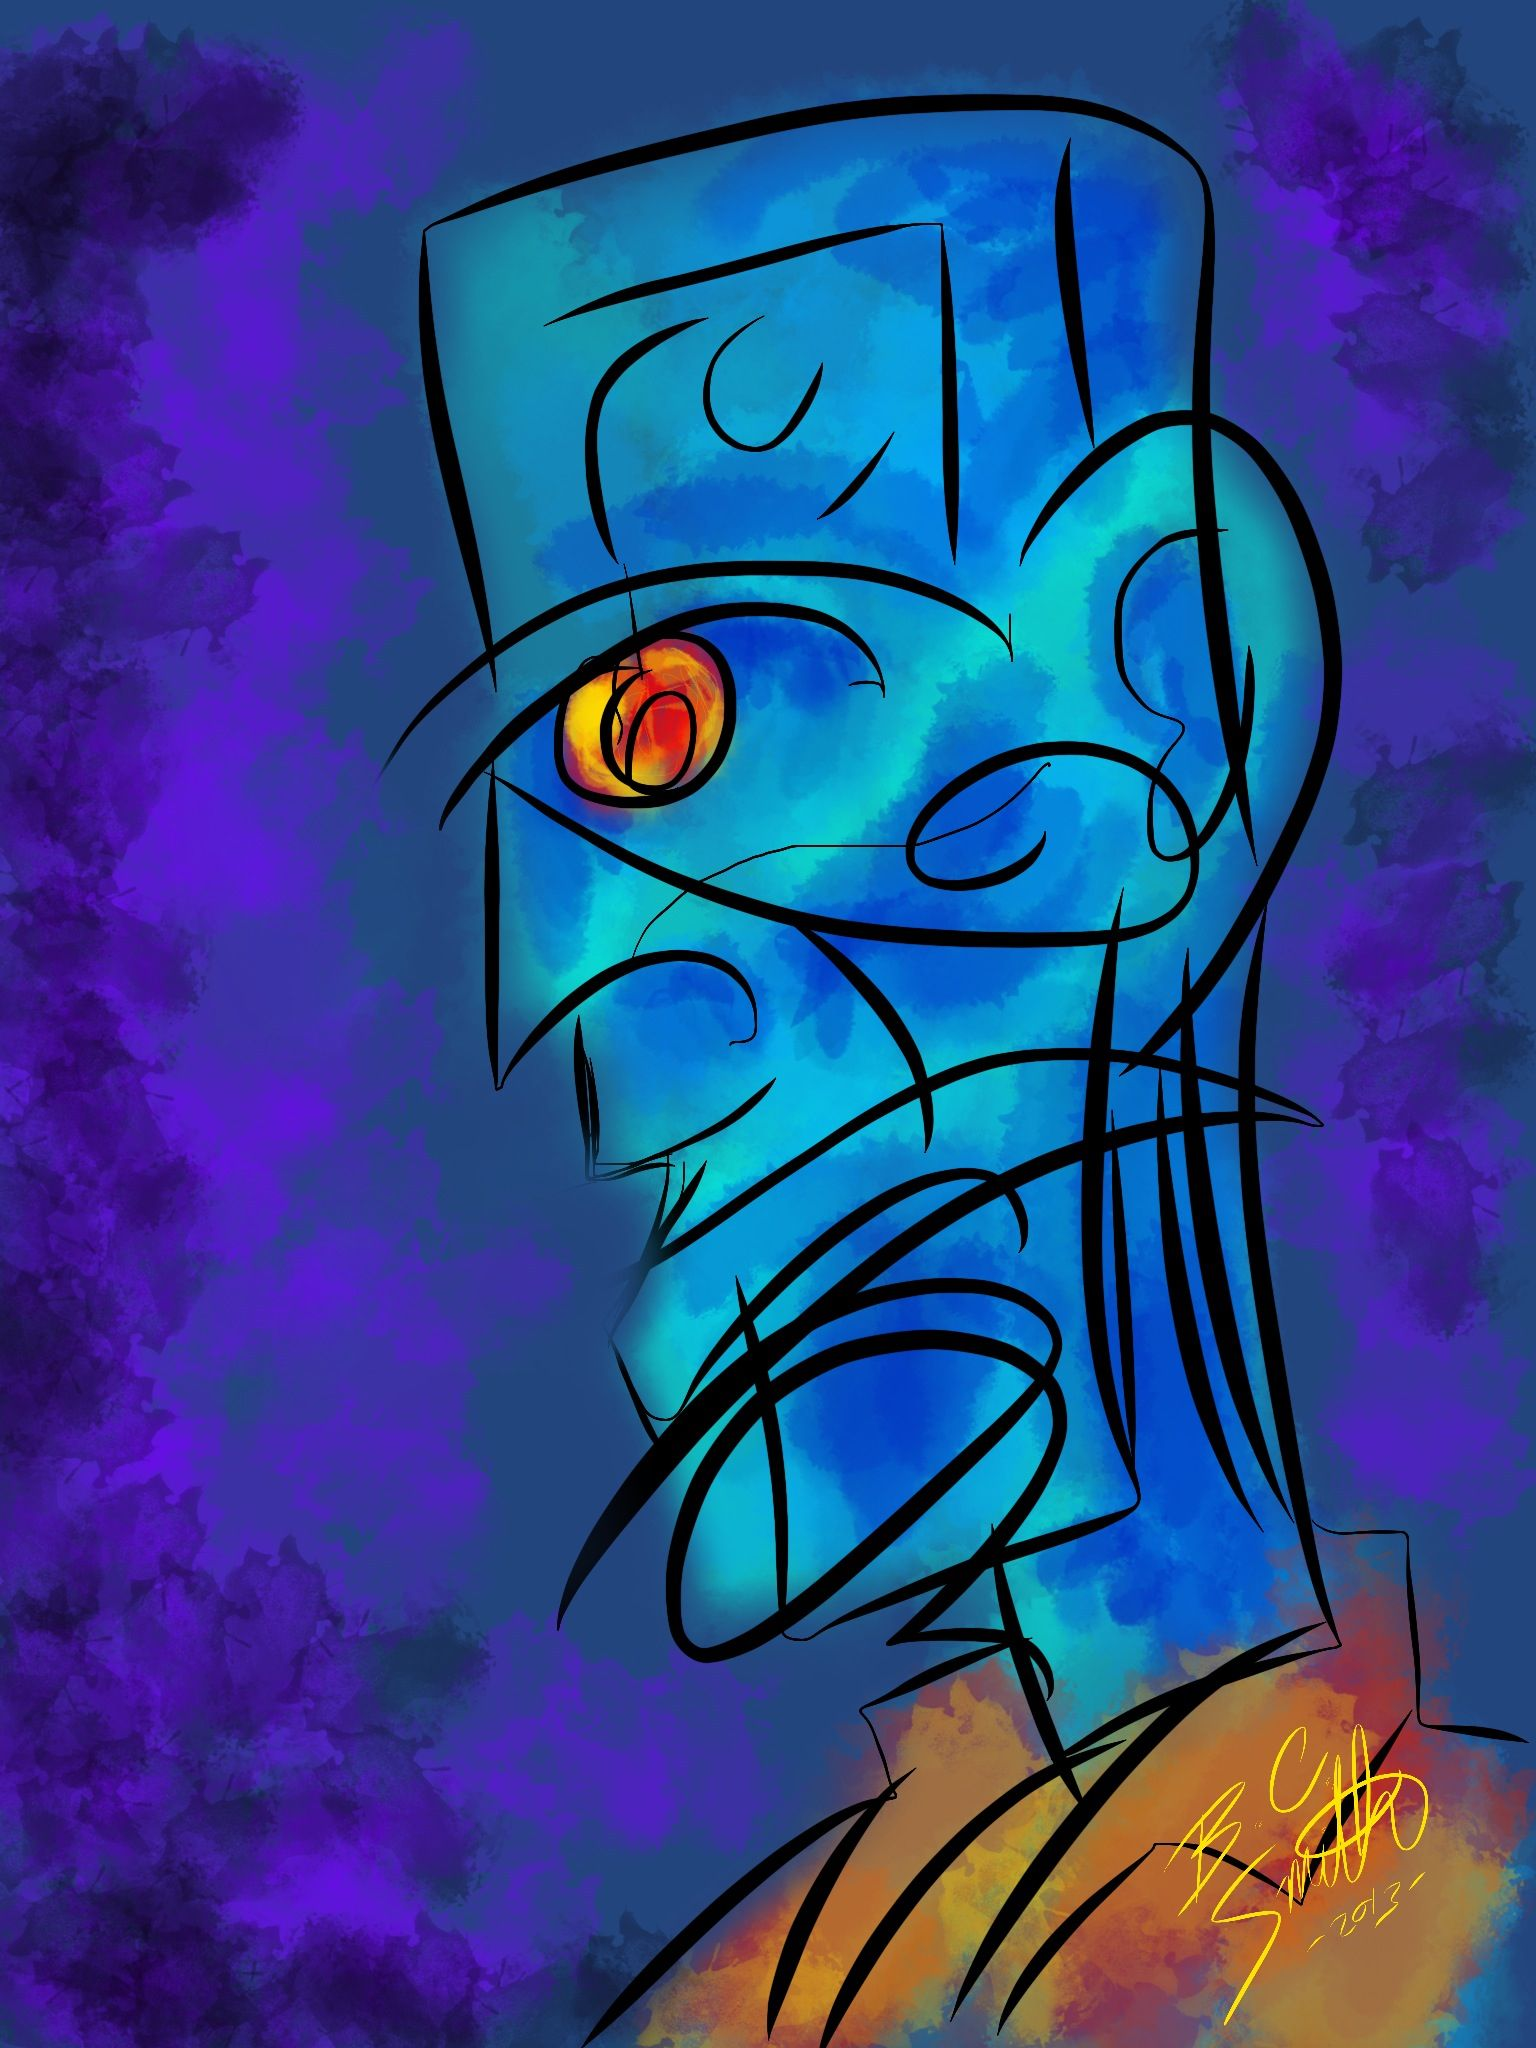 The Blue Man - An Abstract piece  by B.C. Smith 2013 - Created In #procreateapp